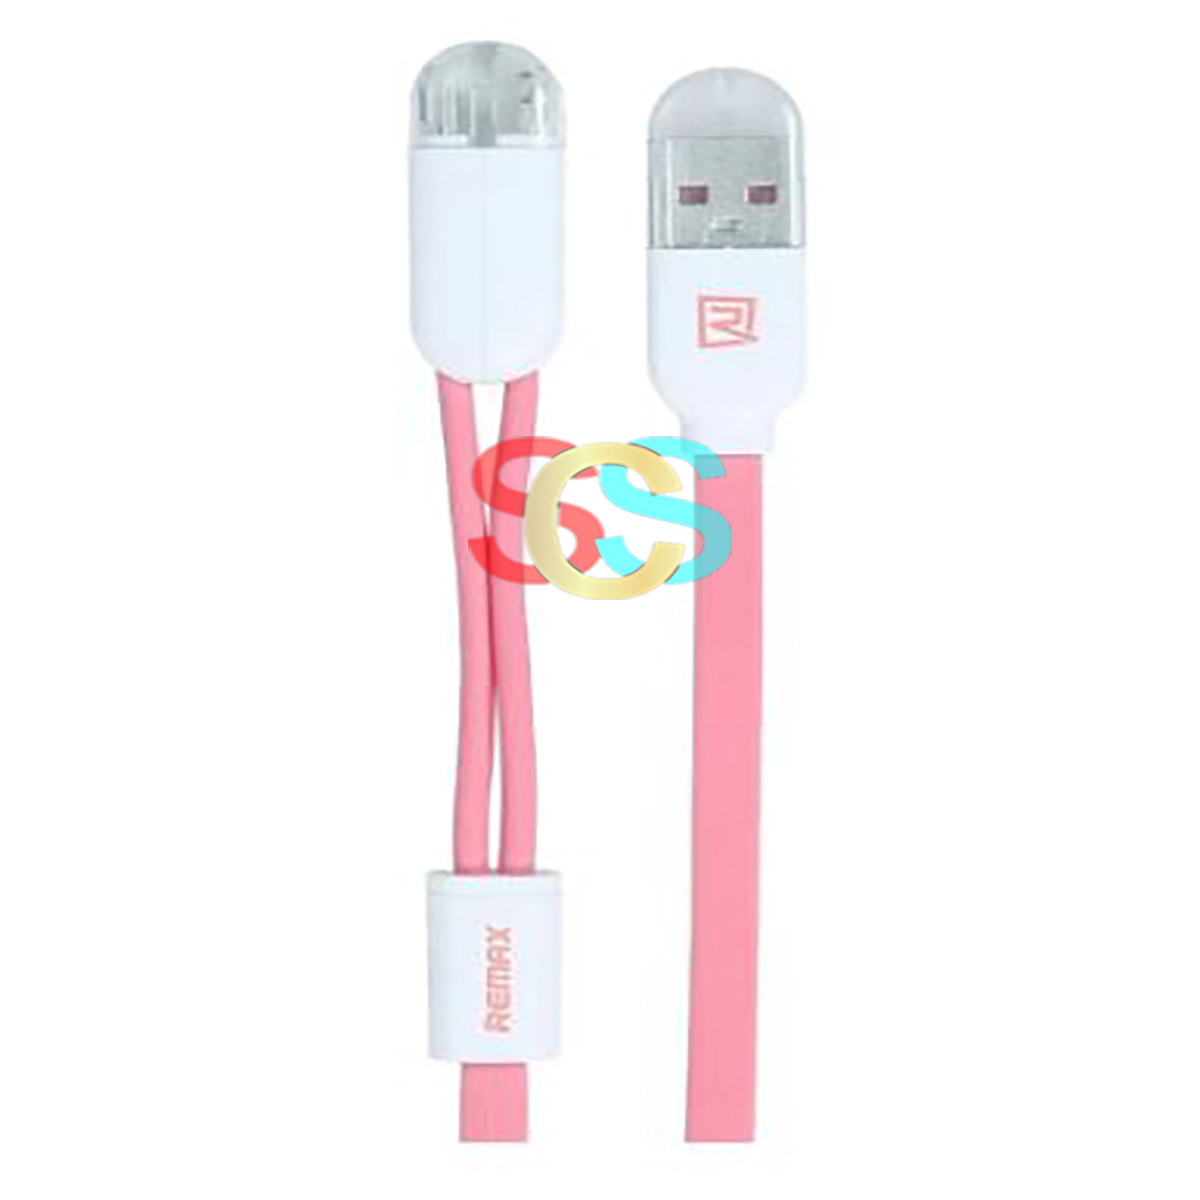 USB Male to Micro USB + Lightning, 1 Meter, Pink Data Cable